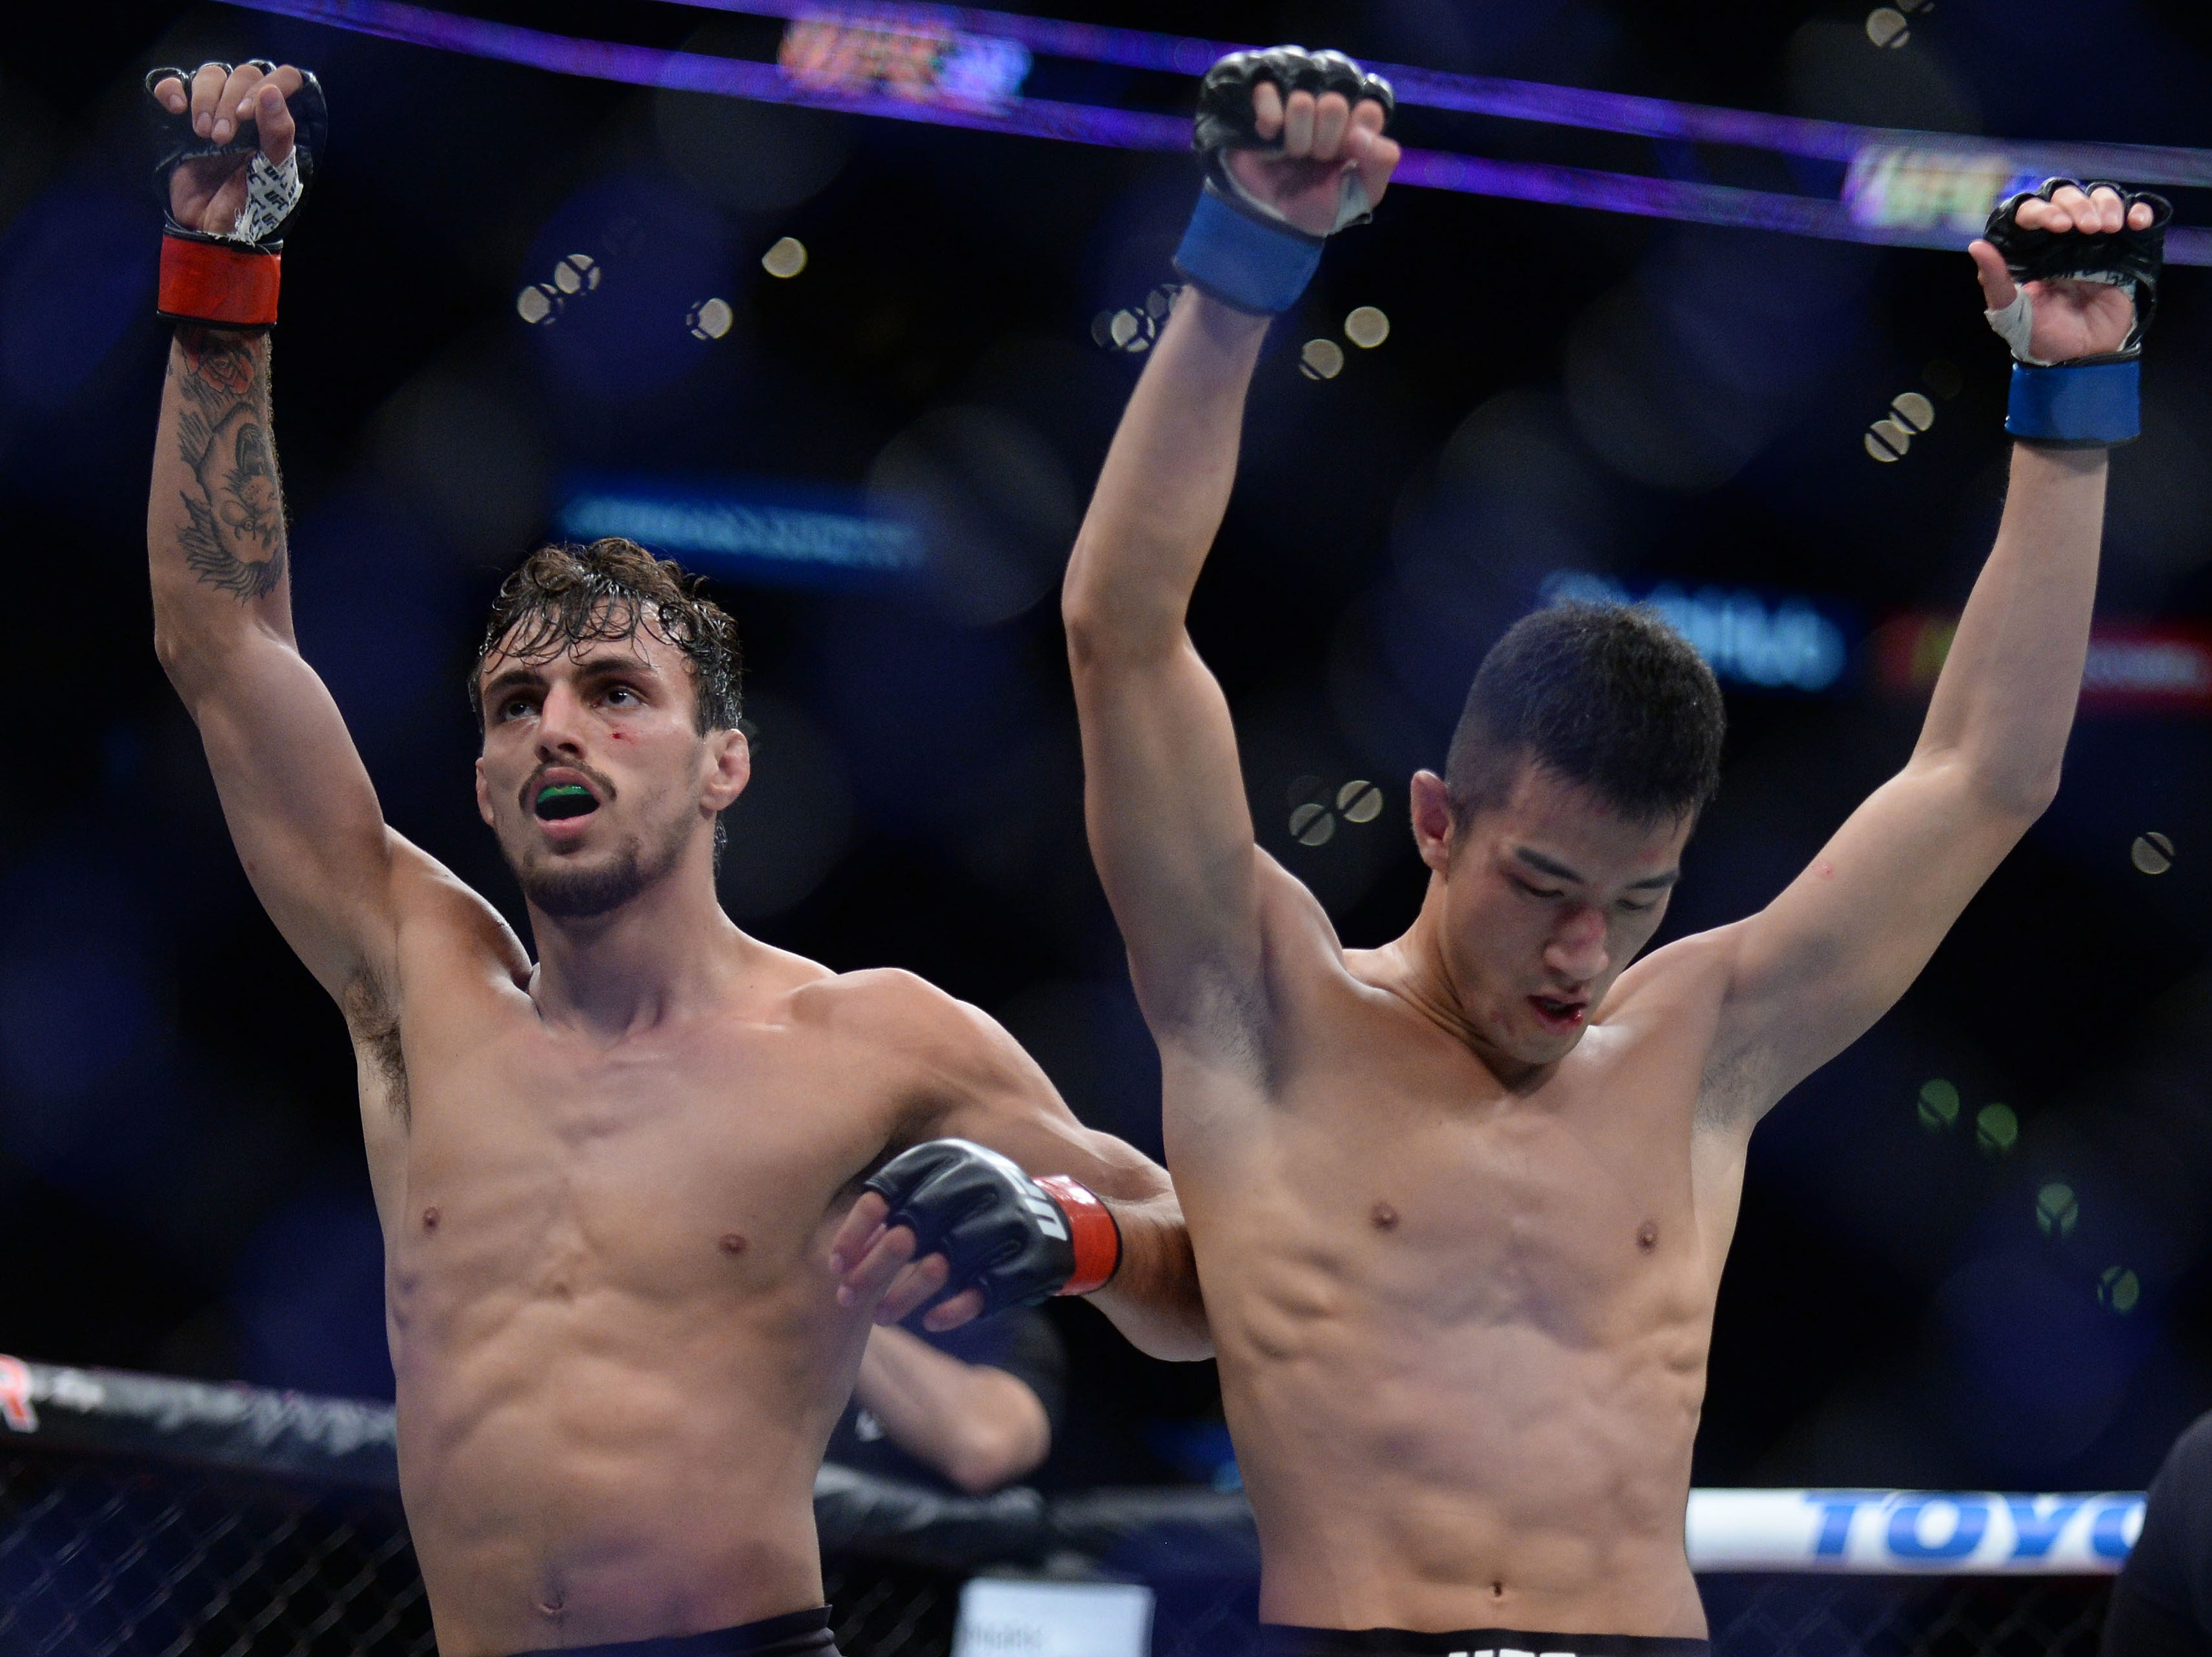 Ricardo Ramos and Kyung Ho Kang following their match during UFC 227 at Staples Center.